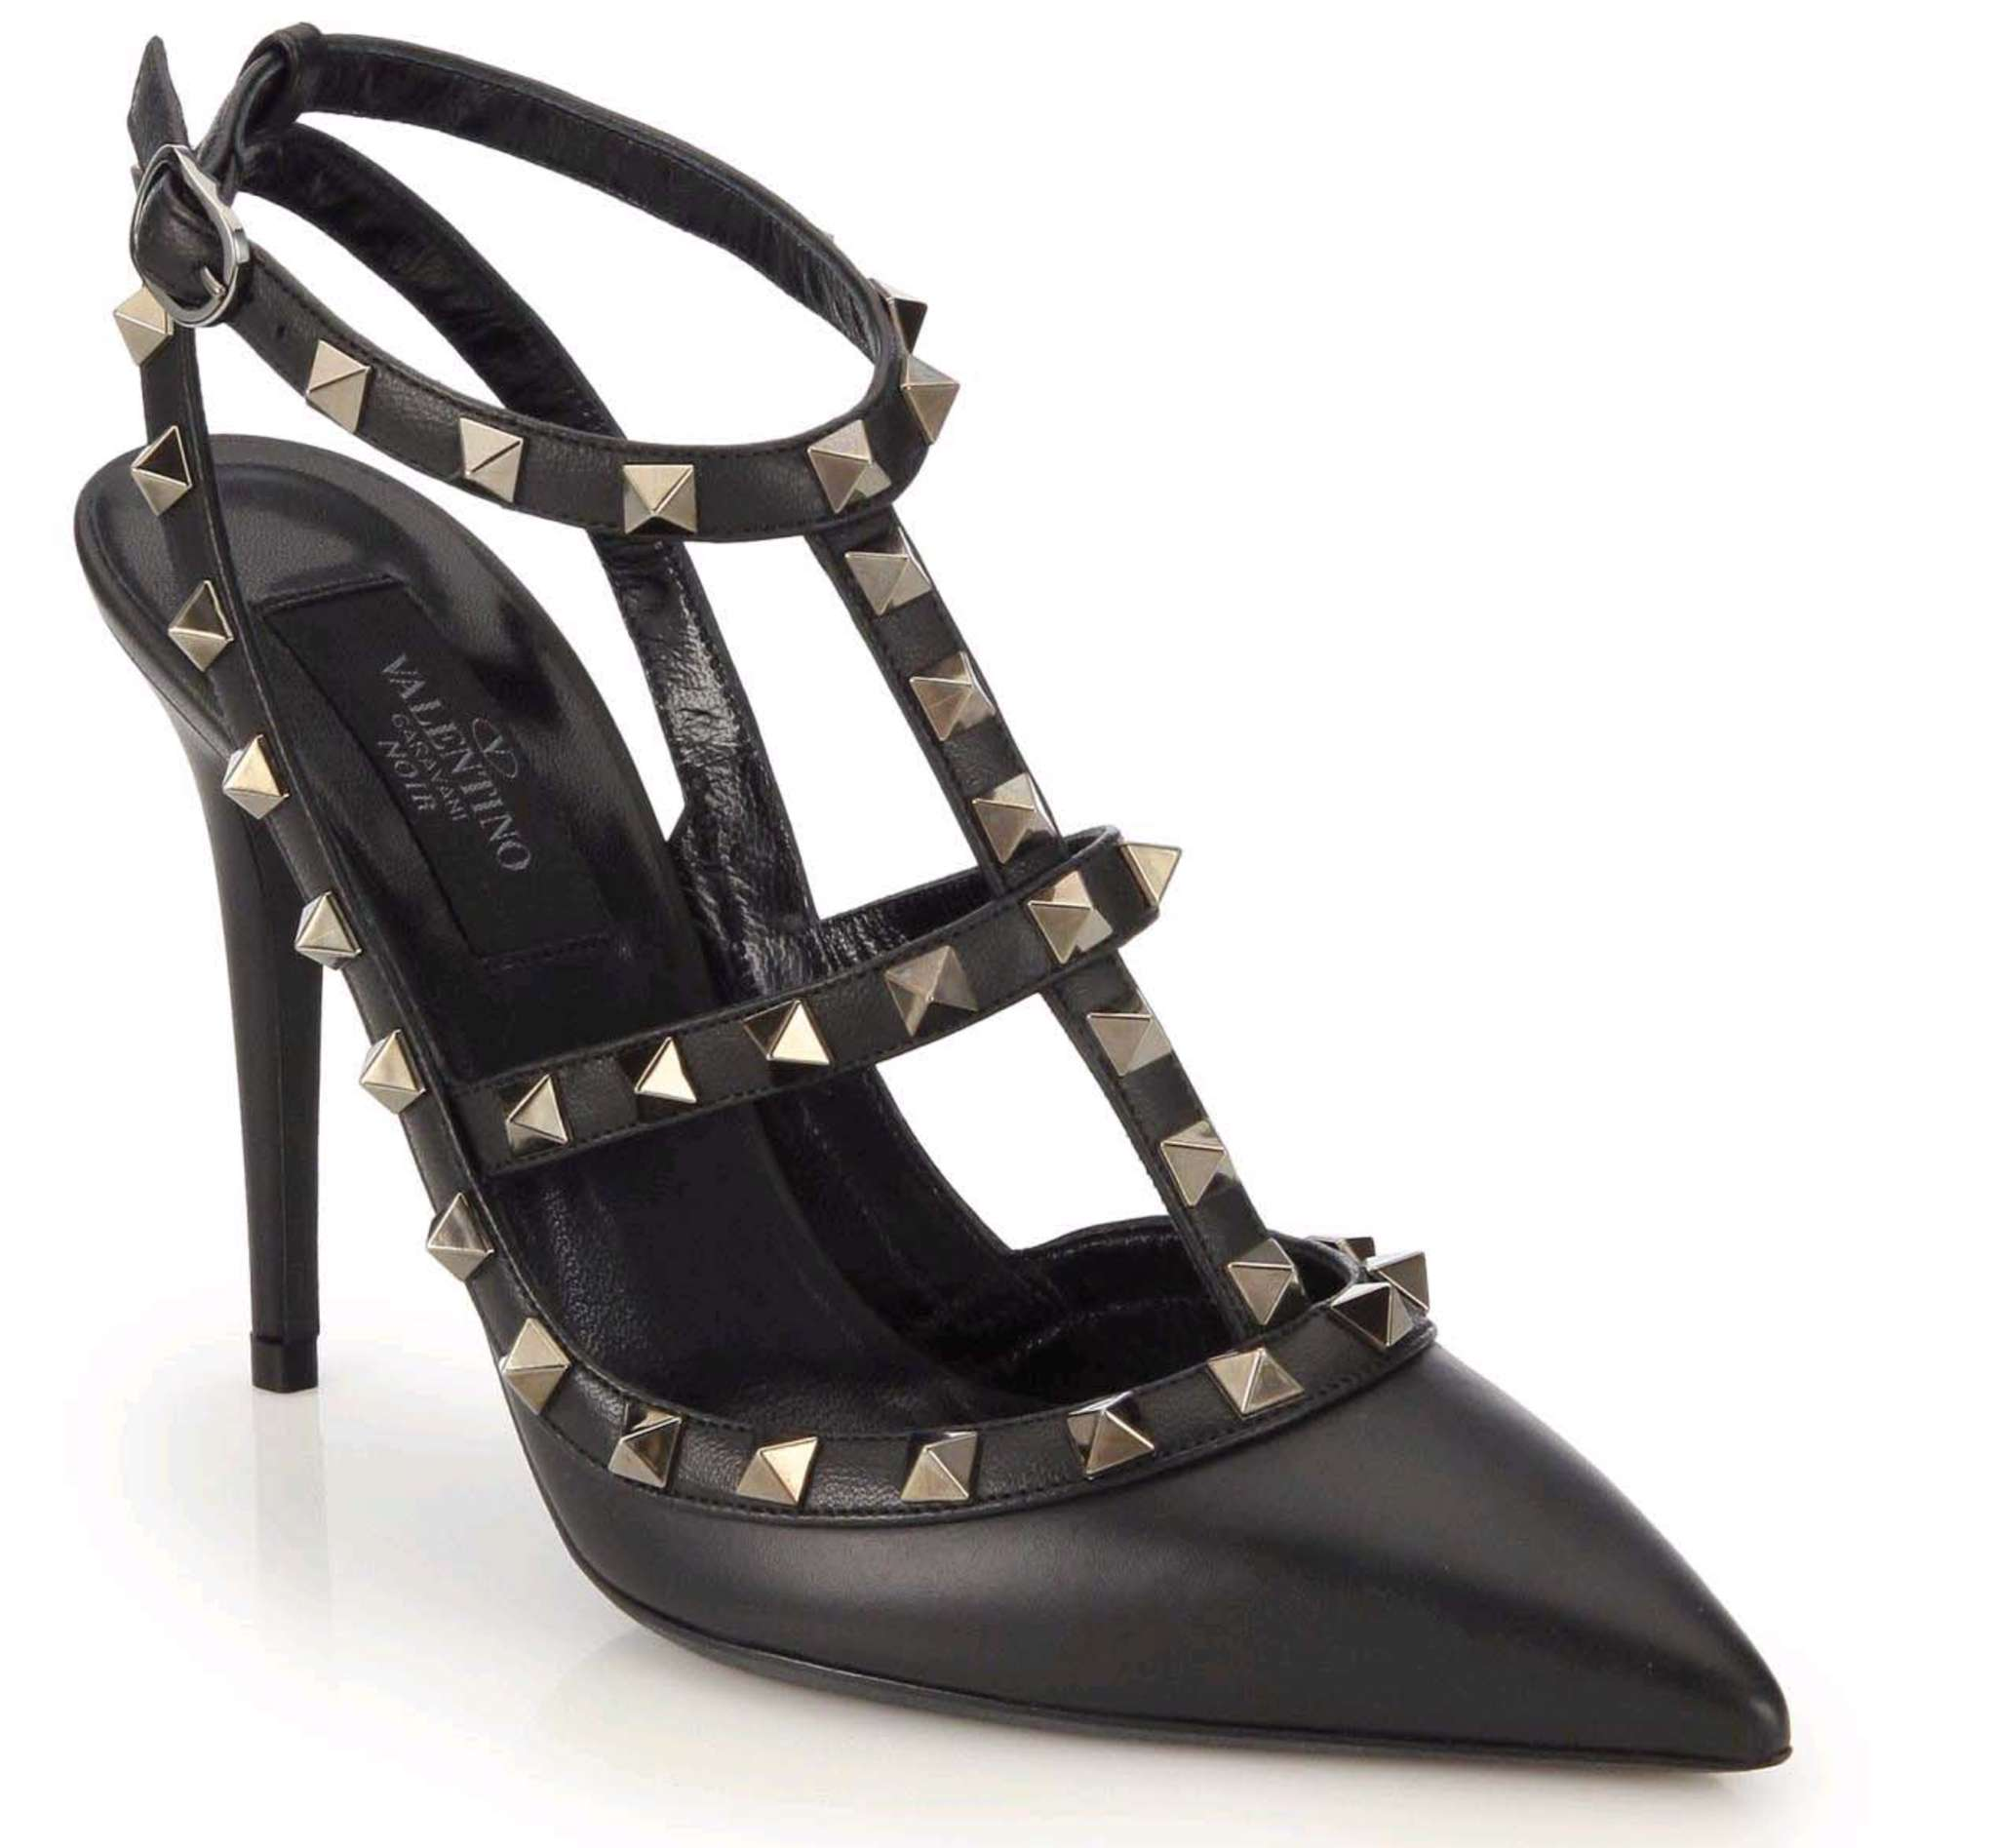 Since 2010, the Valentino Rockstud pump has been a high-fashion staple; $1,095.